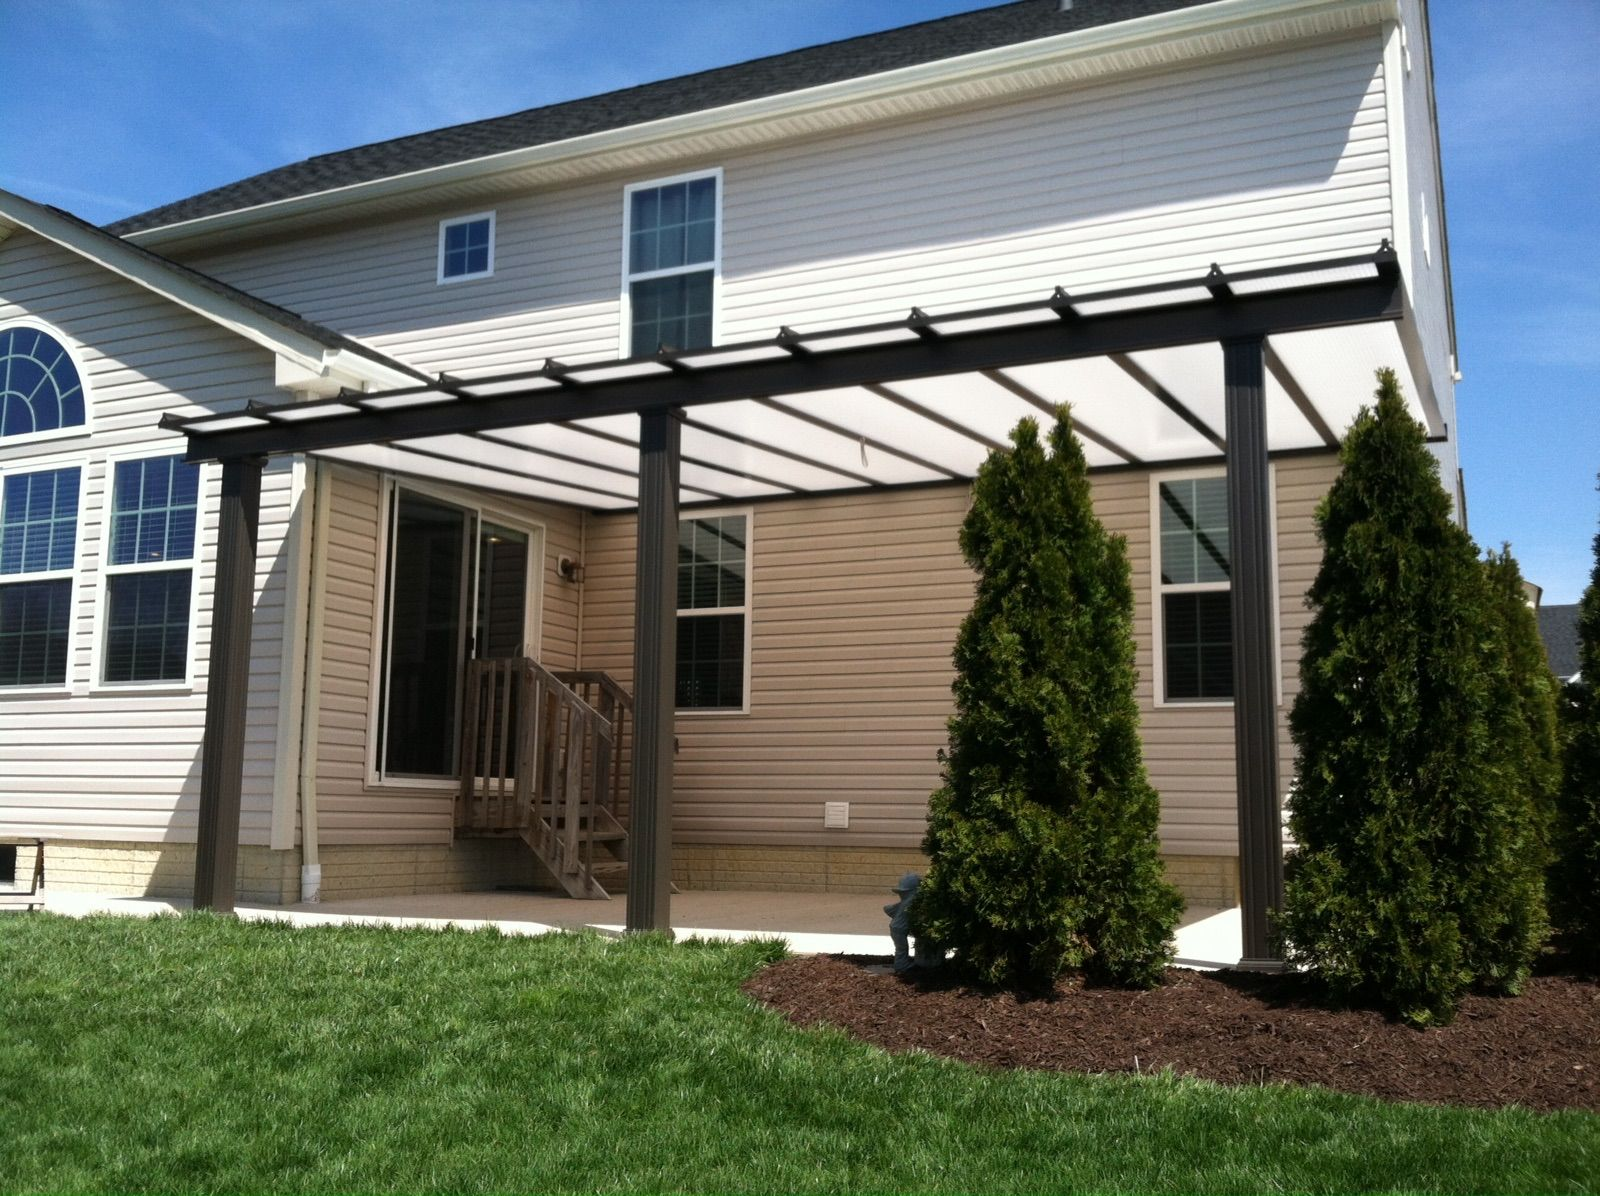 Patio Covers Outdoor Patio Covering Brightcovers Bright Covers Covered Patio Patio Covered Decks